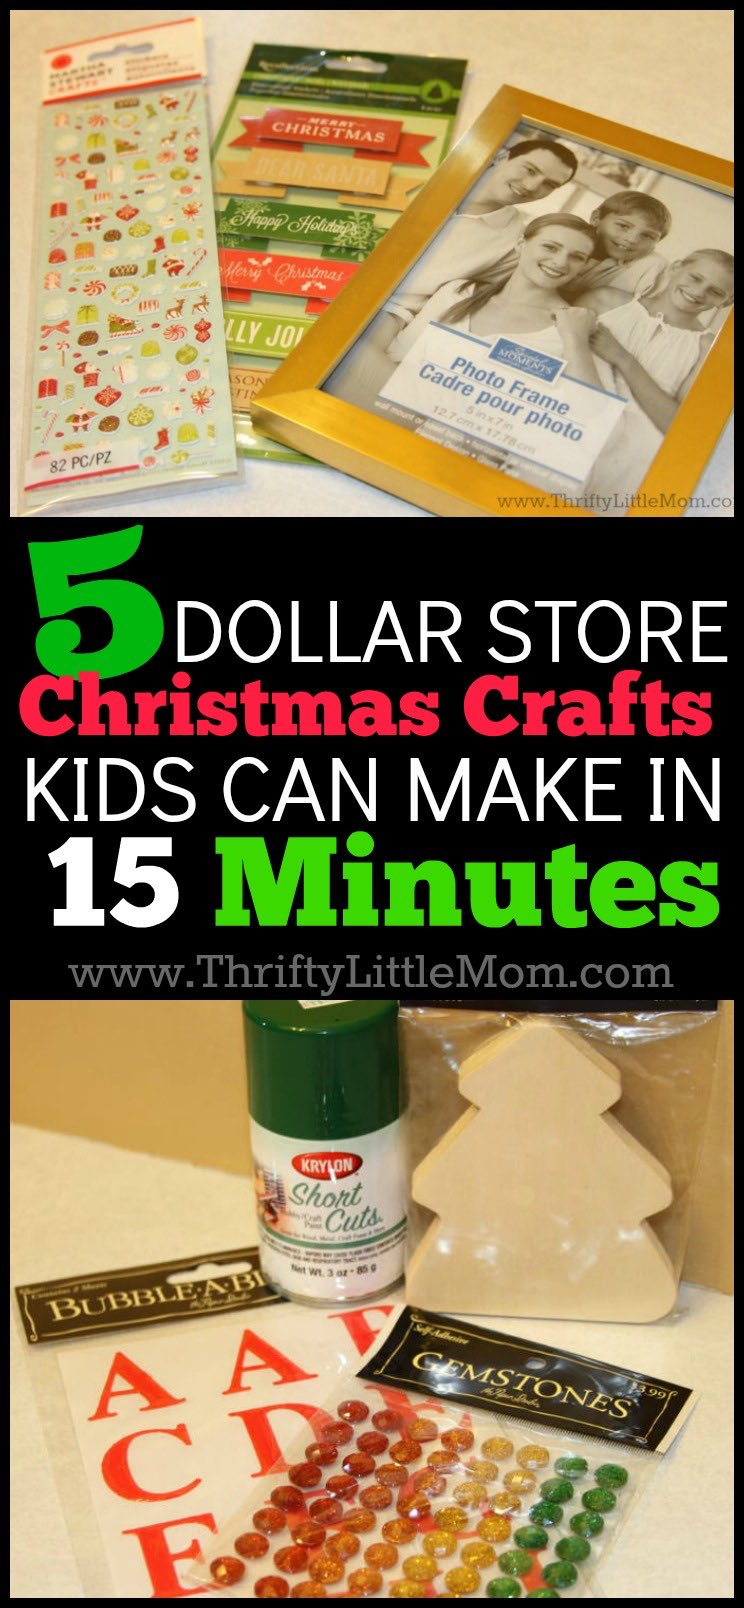 5 dollar store christmas crafts kids can make in 15 minutes